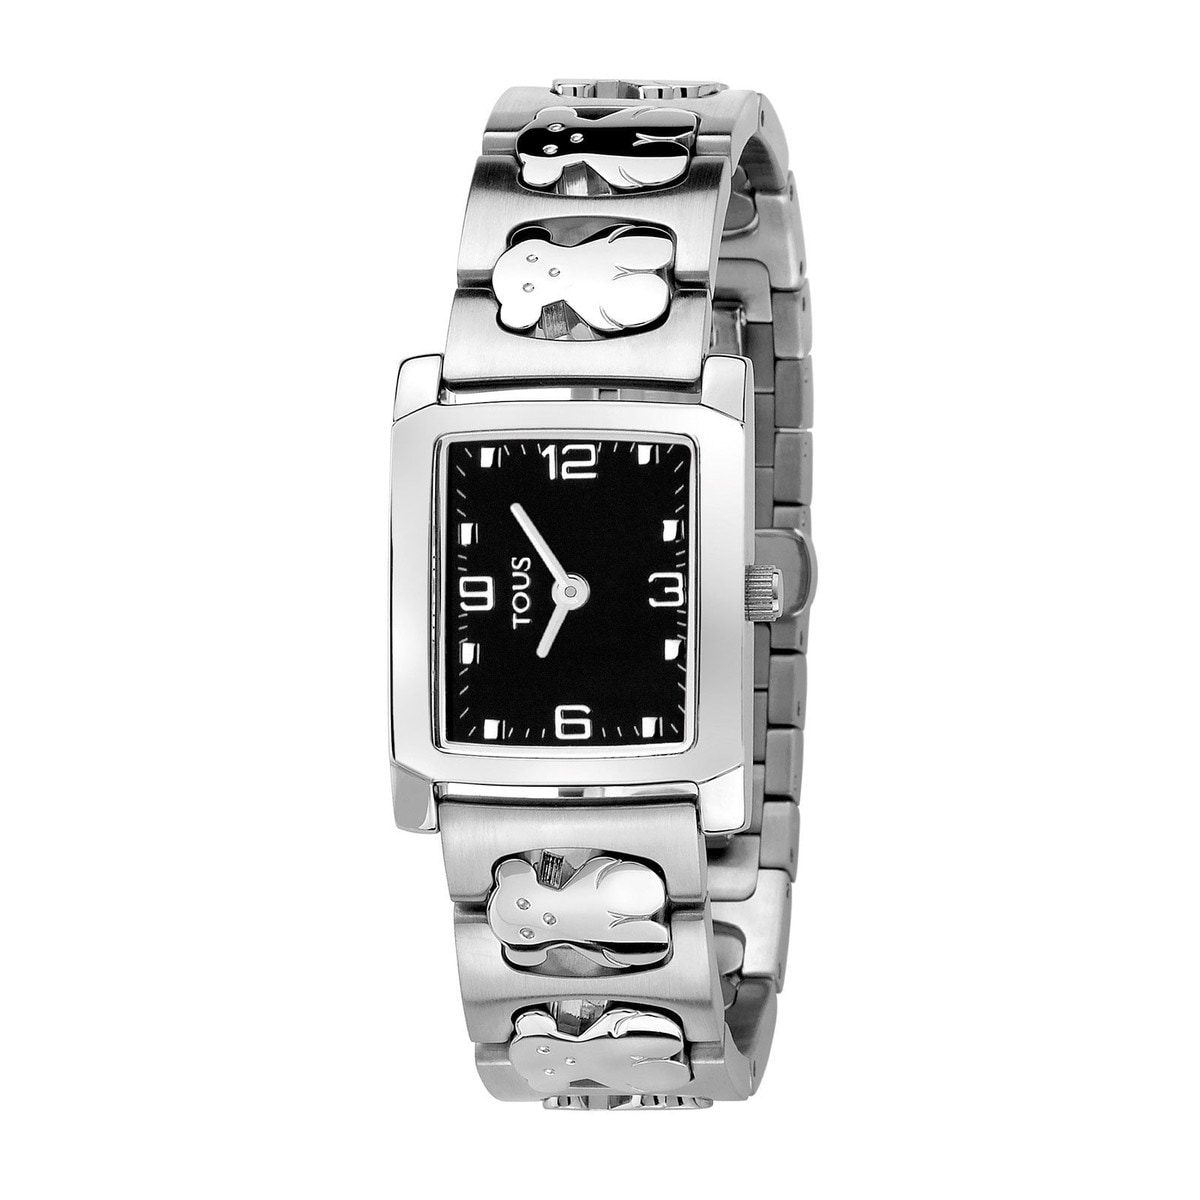 Steel Praga Watch